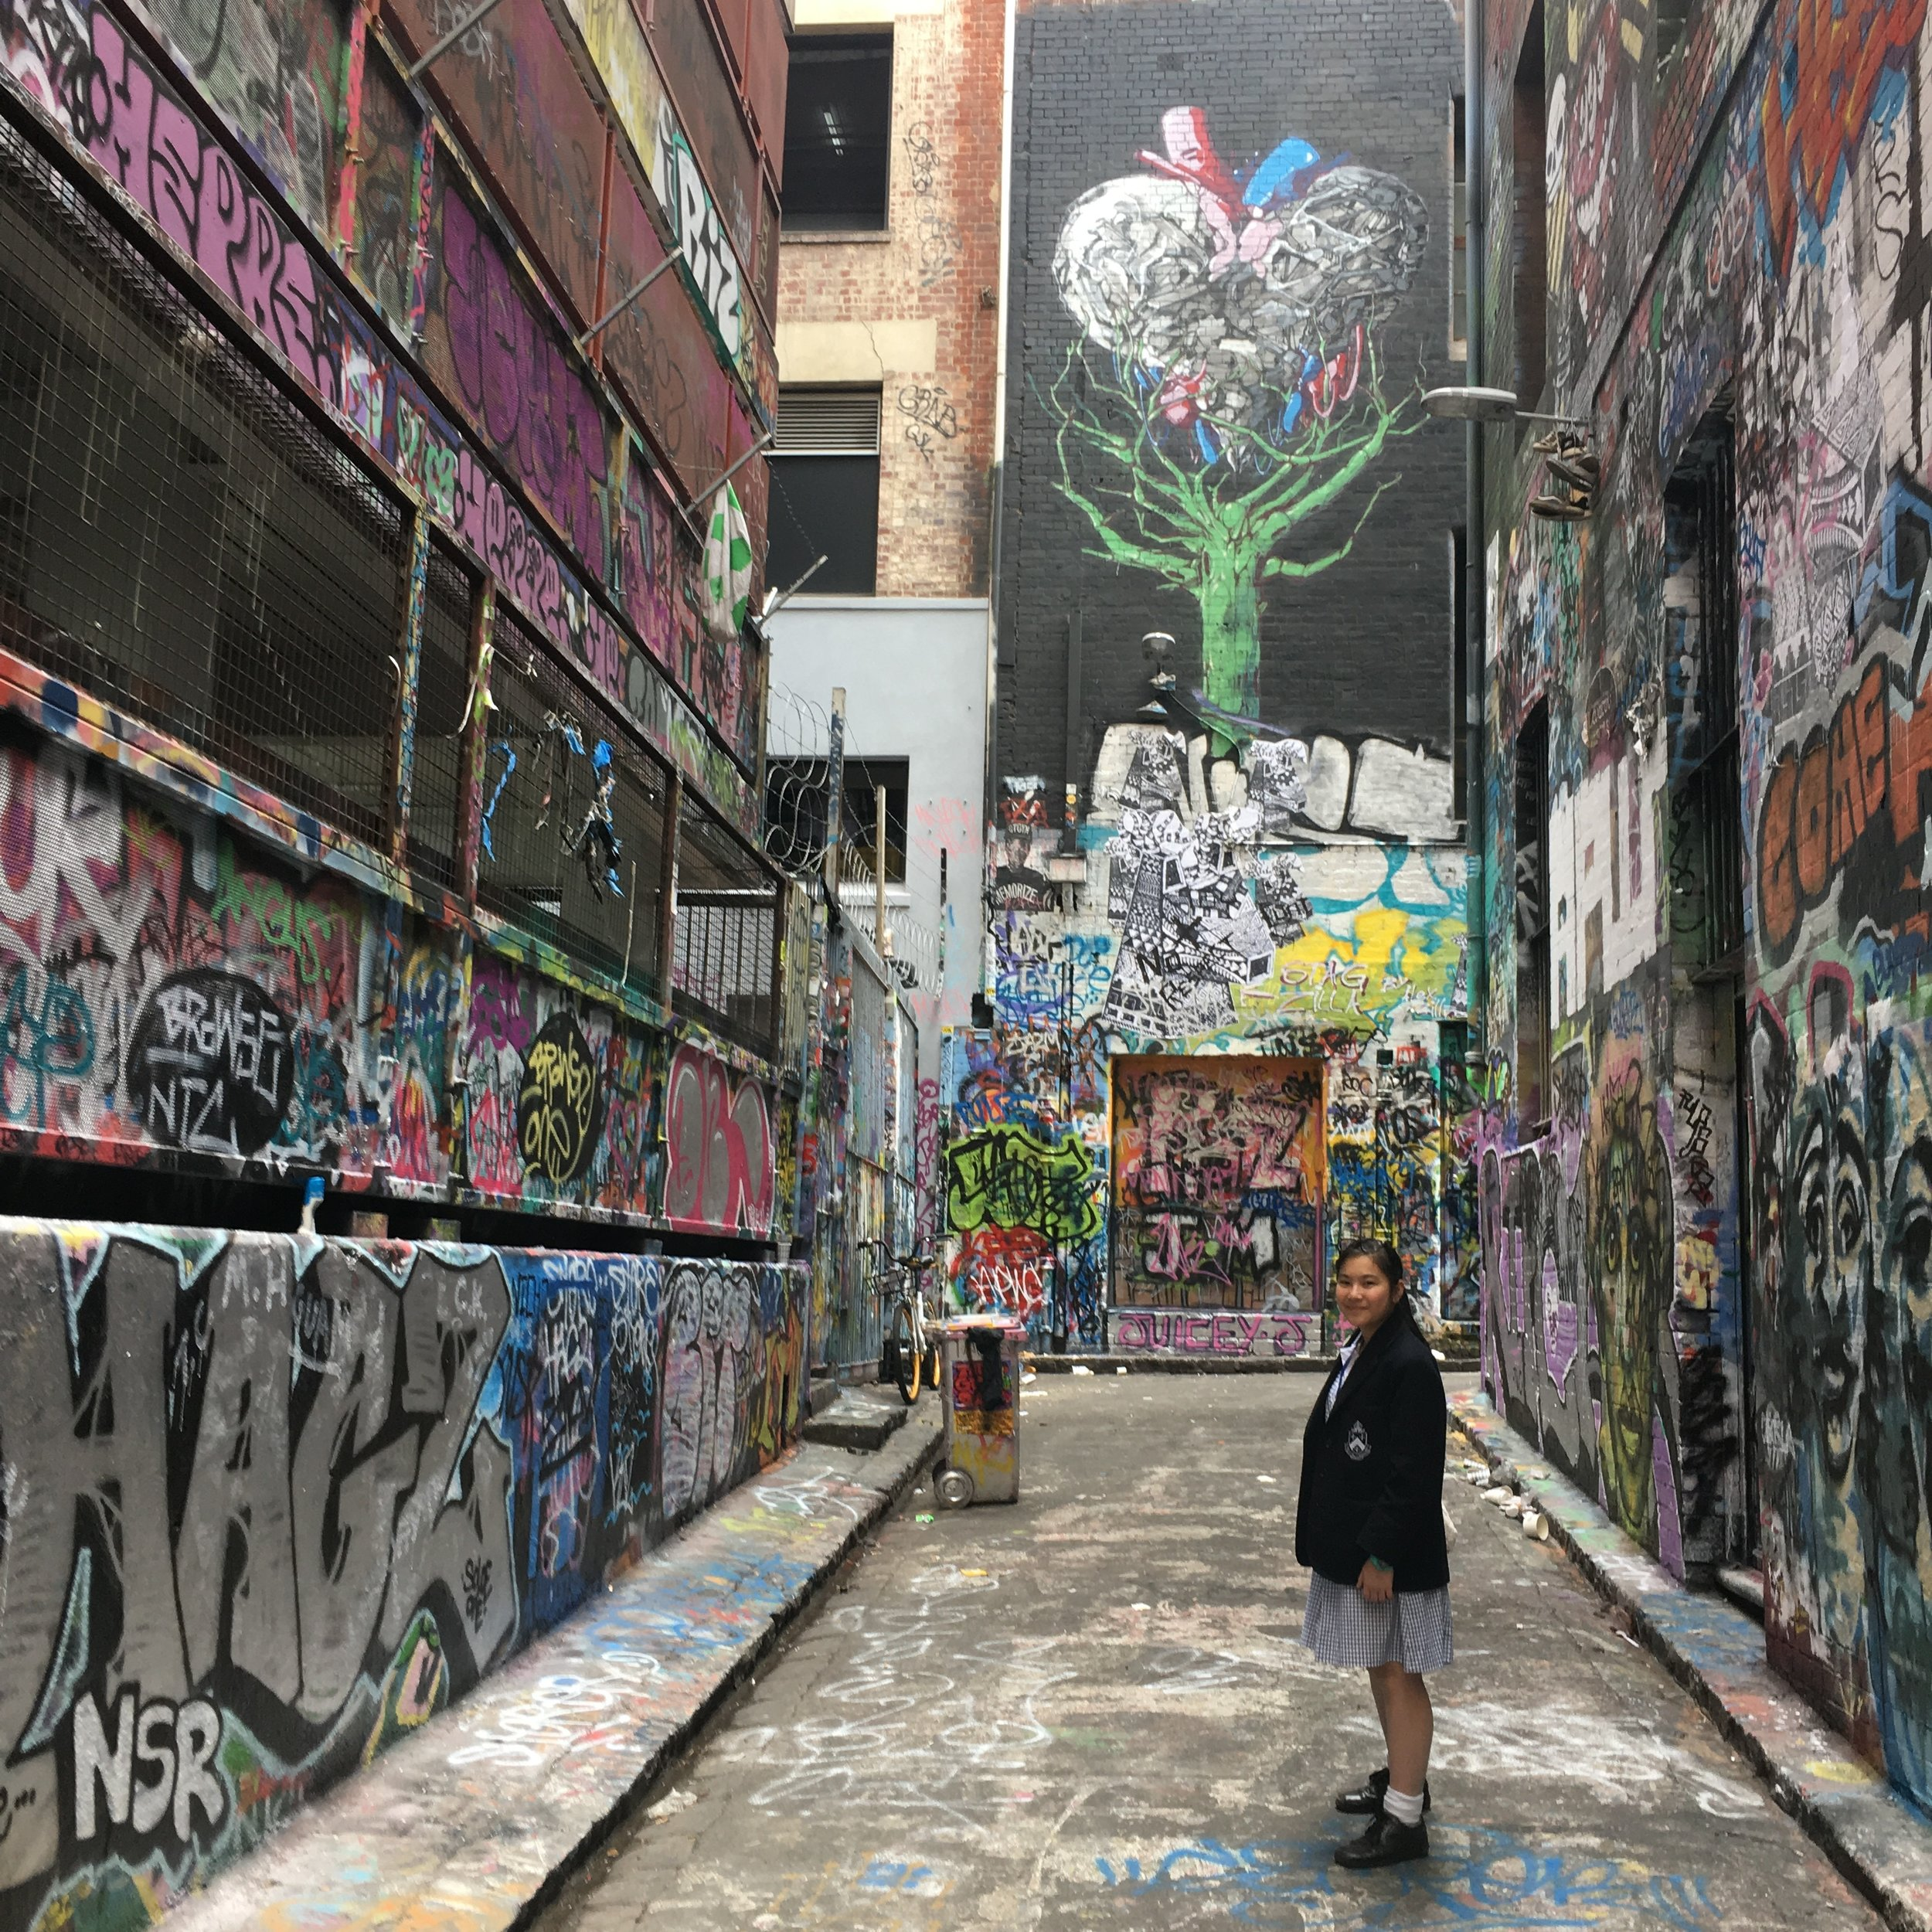 Yr 7 Exploring Melbourne's laneways for great imagery.